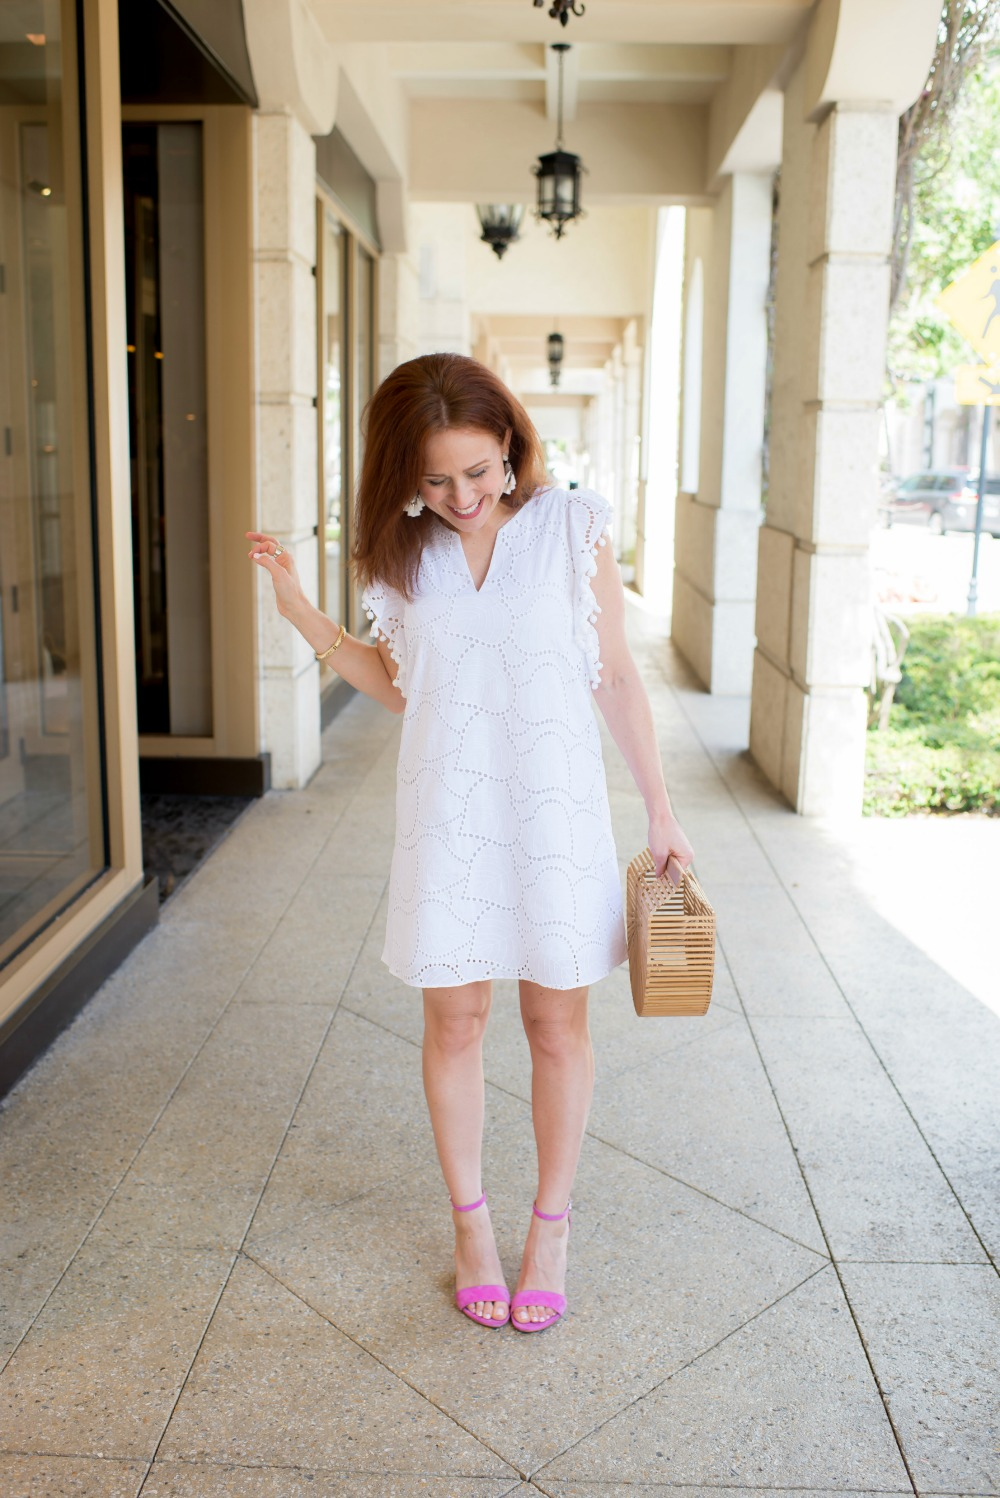 How to Style the Little White Dress // the modern savvy, life & style blog - The Little White Dress featured by popular Florida style blogger, The Modern Savvy